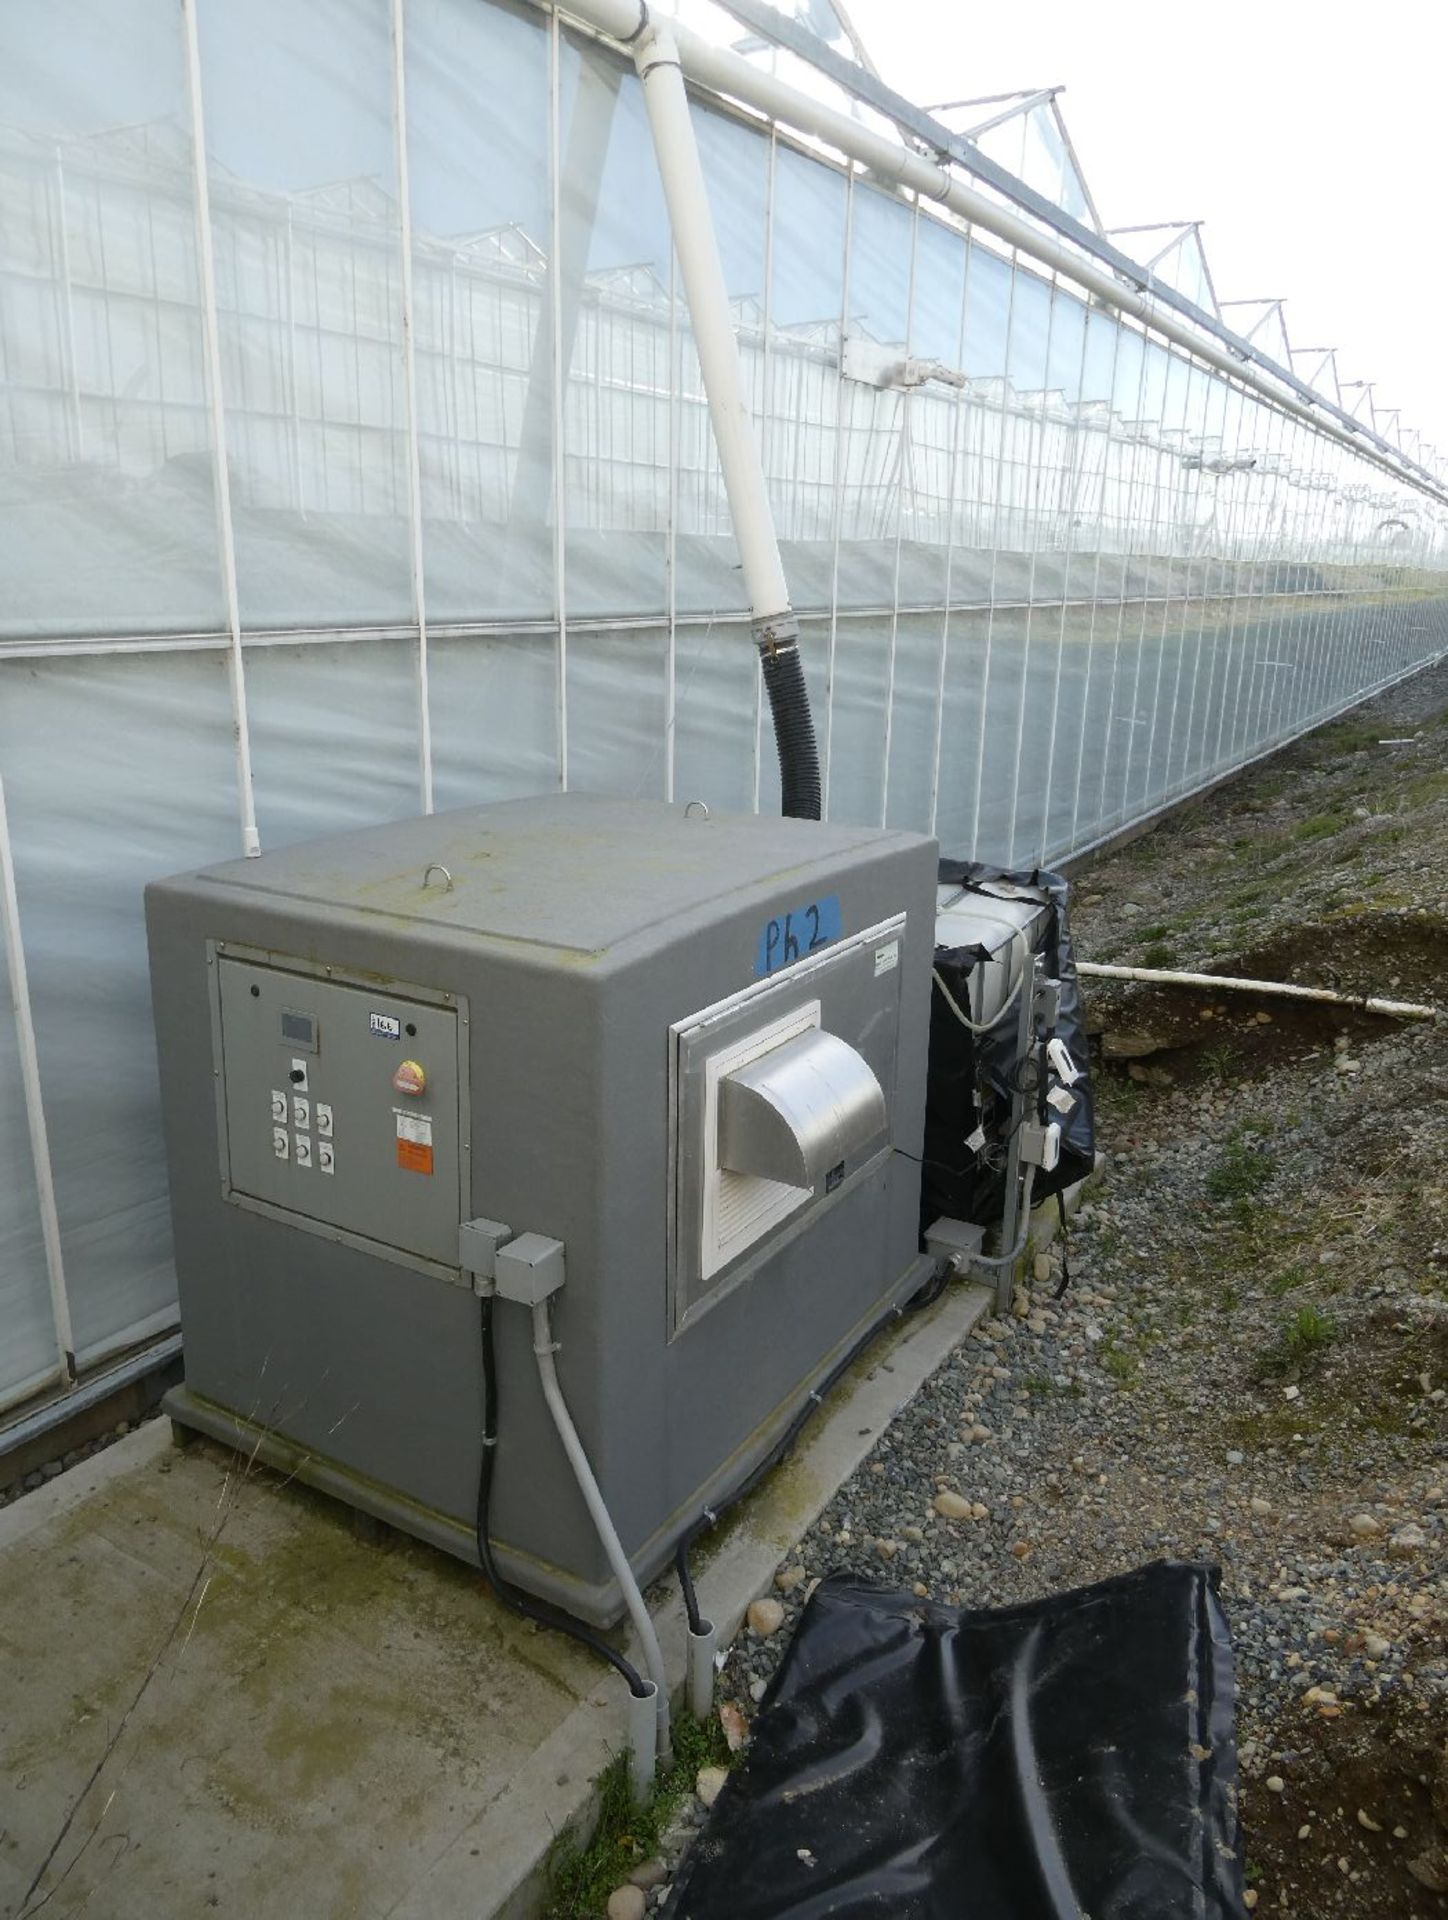 Byers Scientific 1812202 Odour Management System - Image 2 of 4